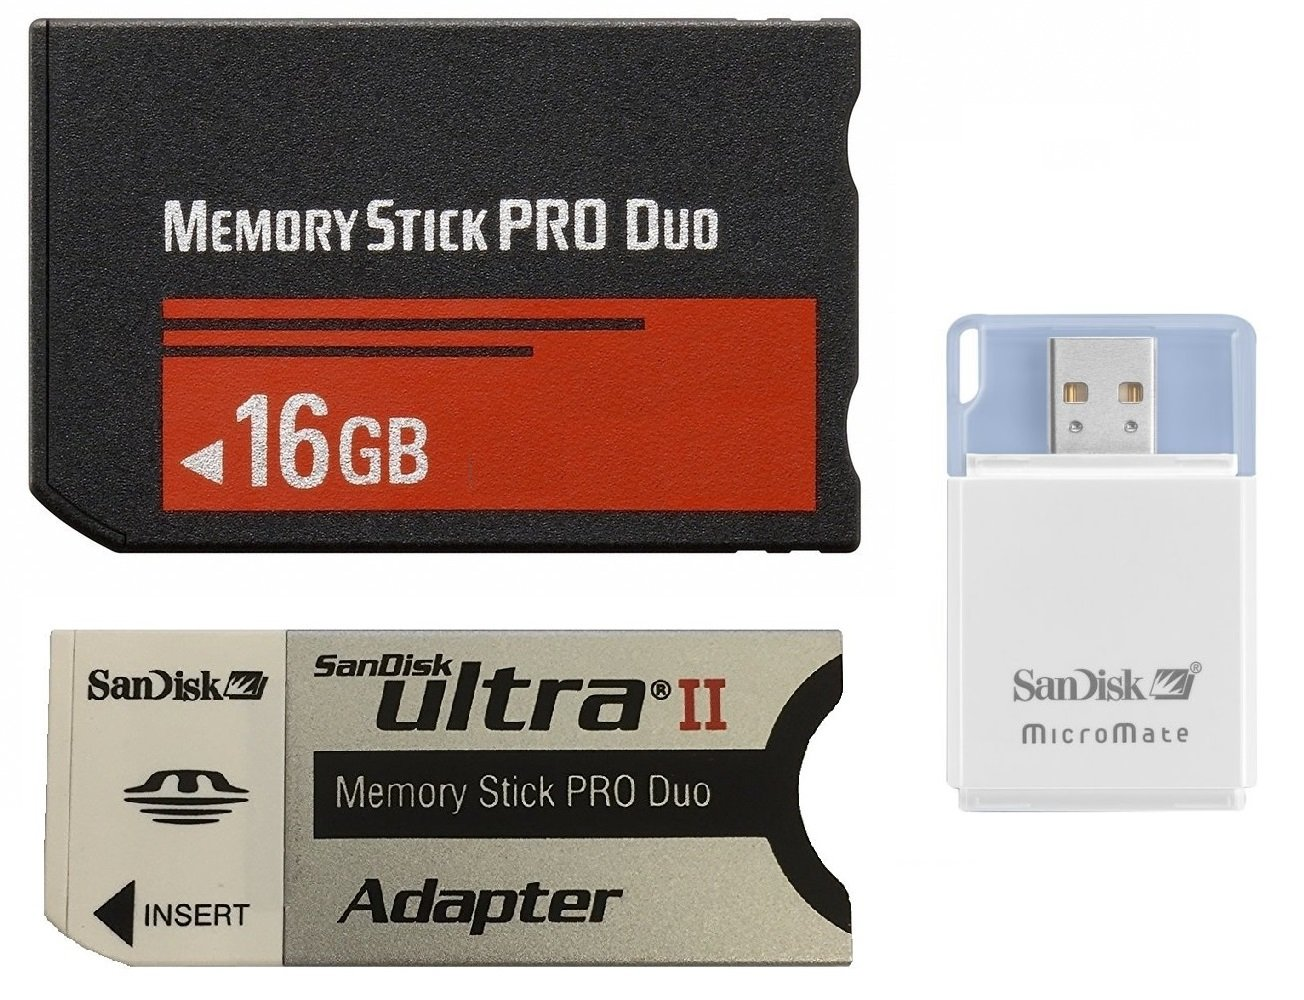 16 GB Memory Stick PRO Duo Flash Memory Card FVMSPD-016G Plus Micromate reader and Adapter